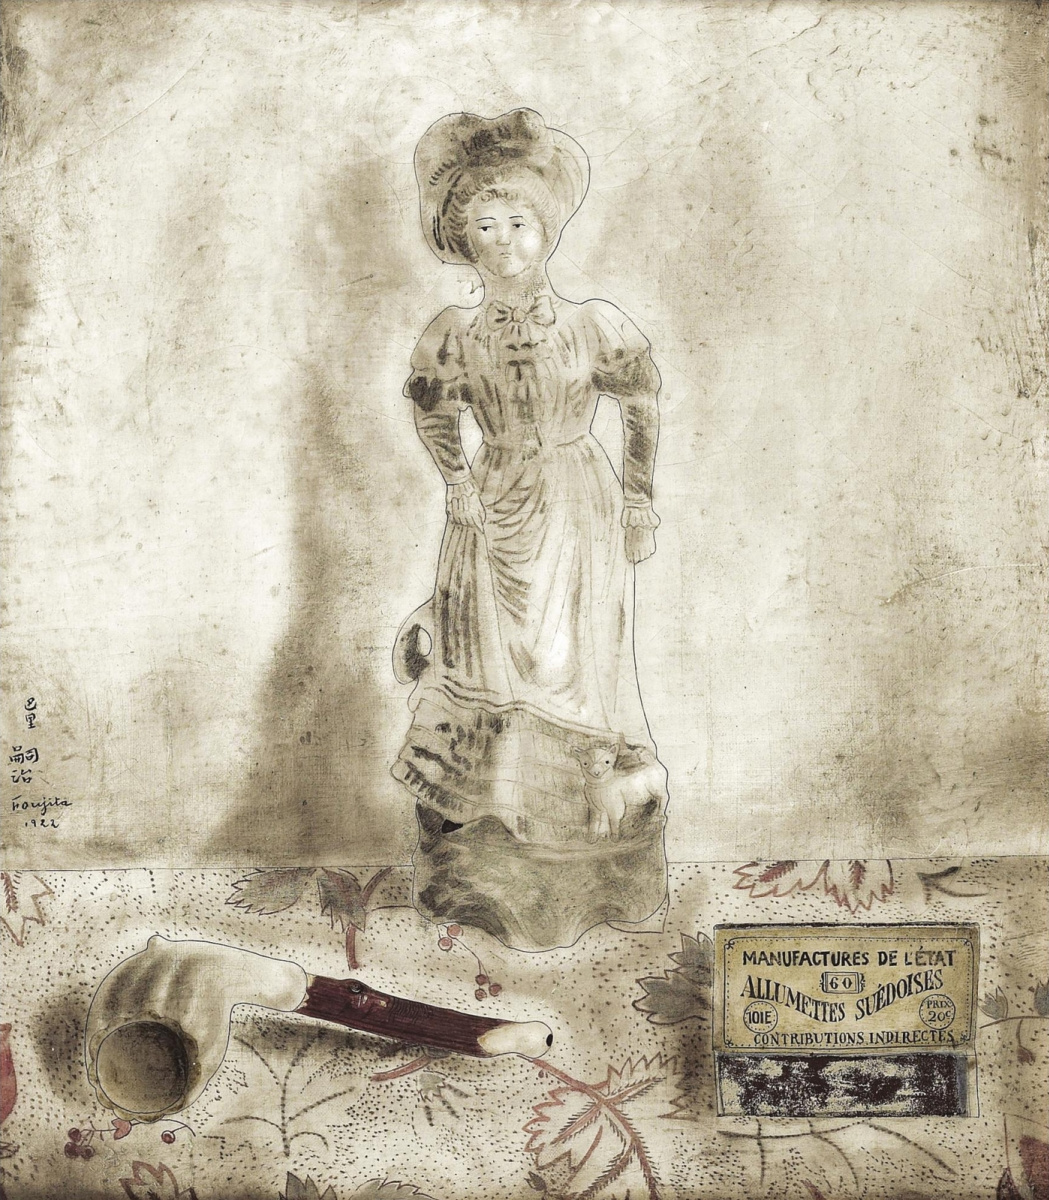 Цугухару Фудзита ( Леонар Фужита ). Still-life with a porcelain figurine